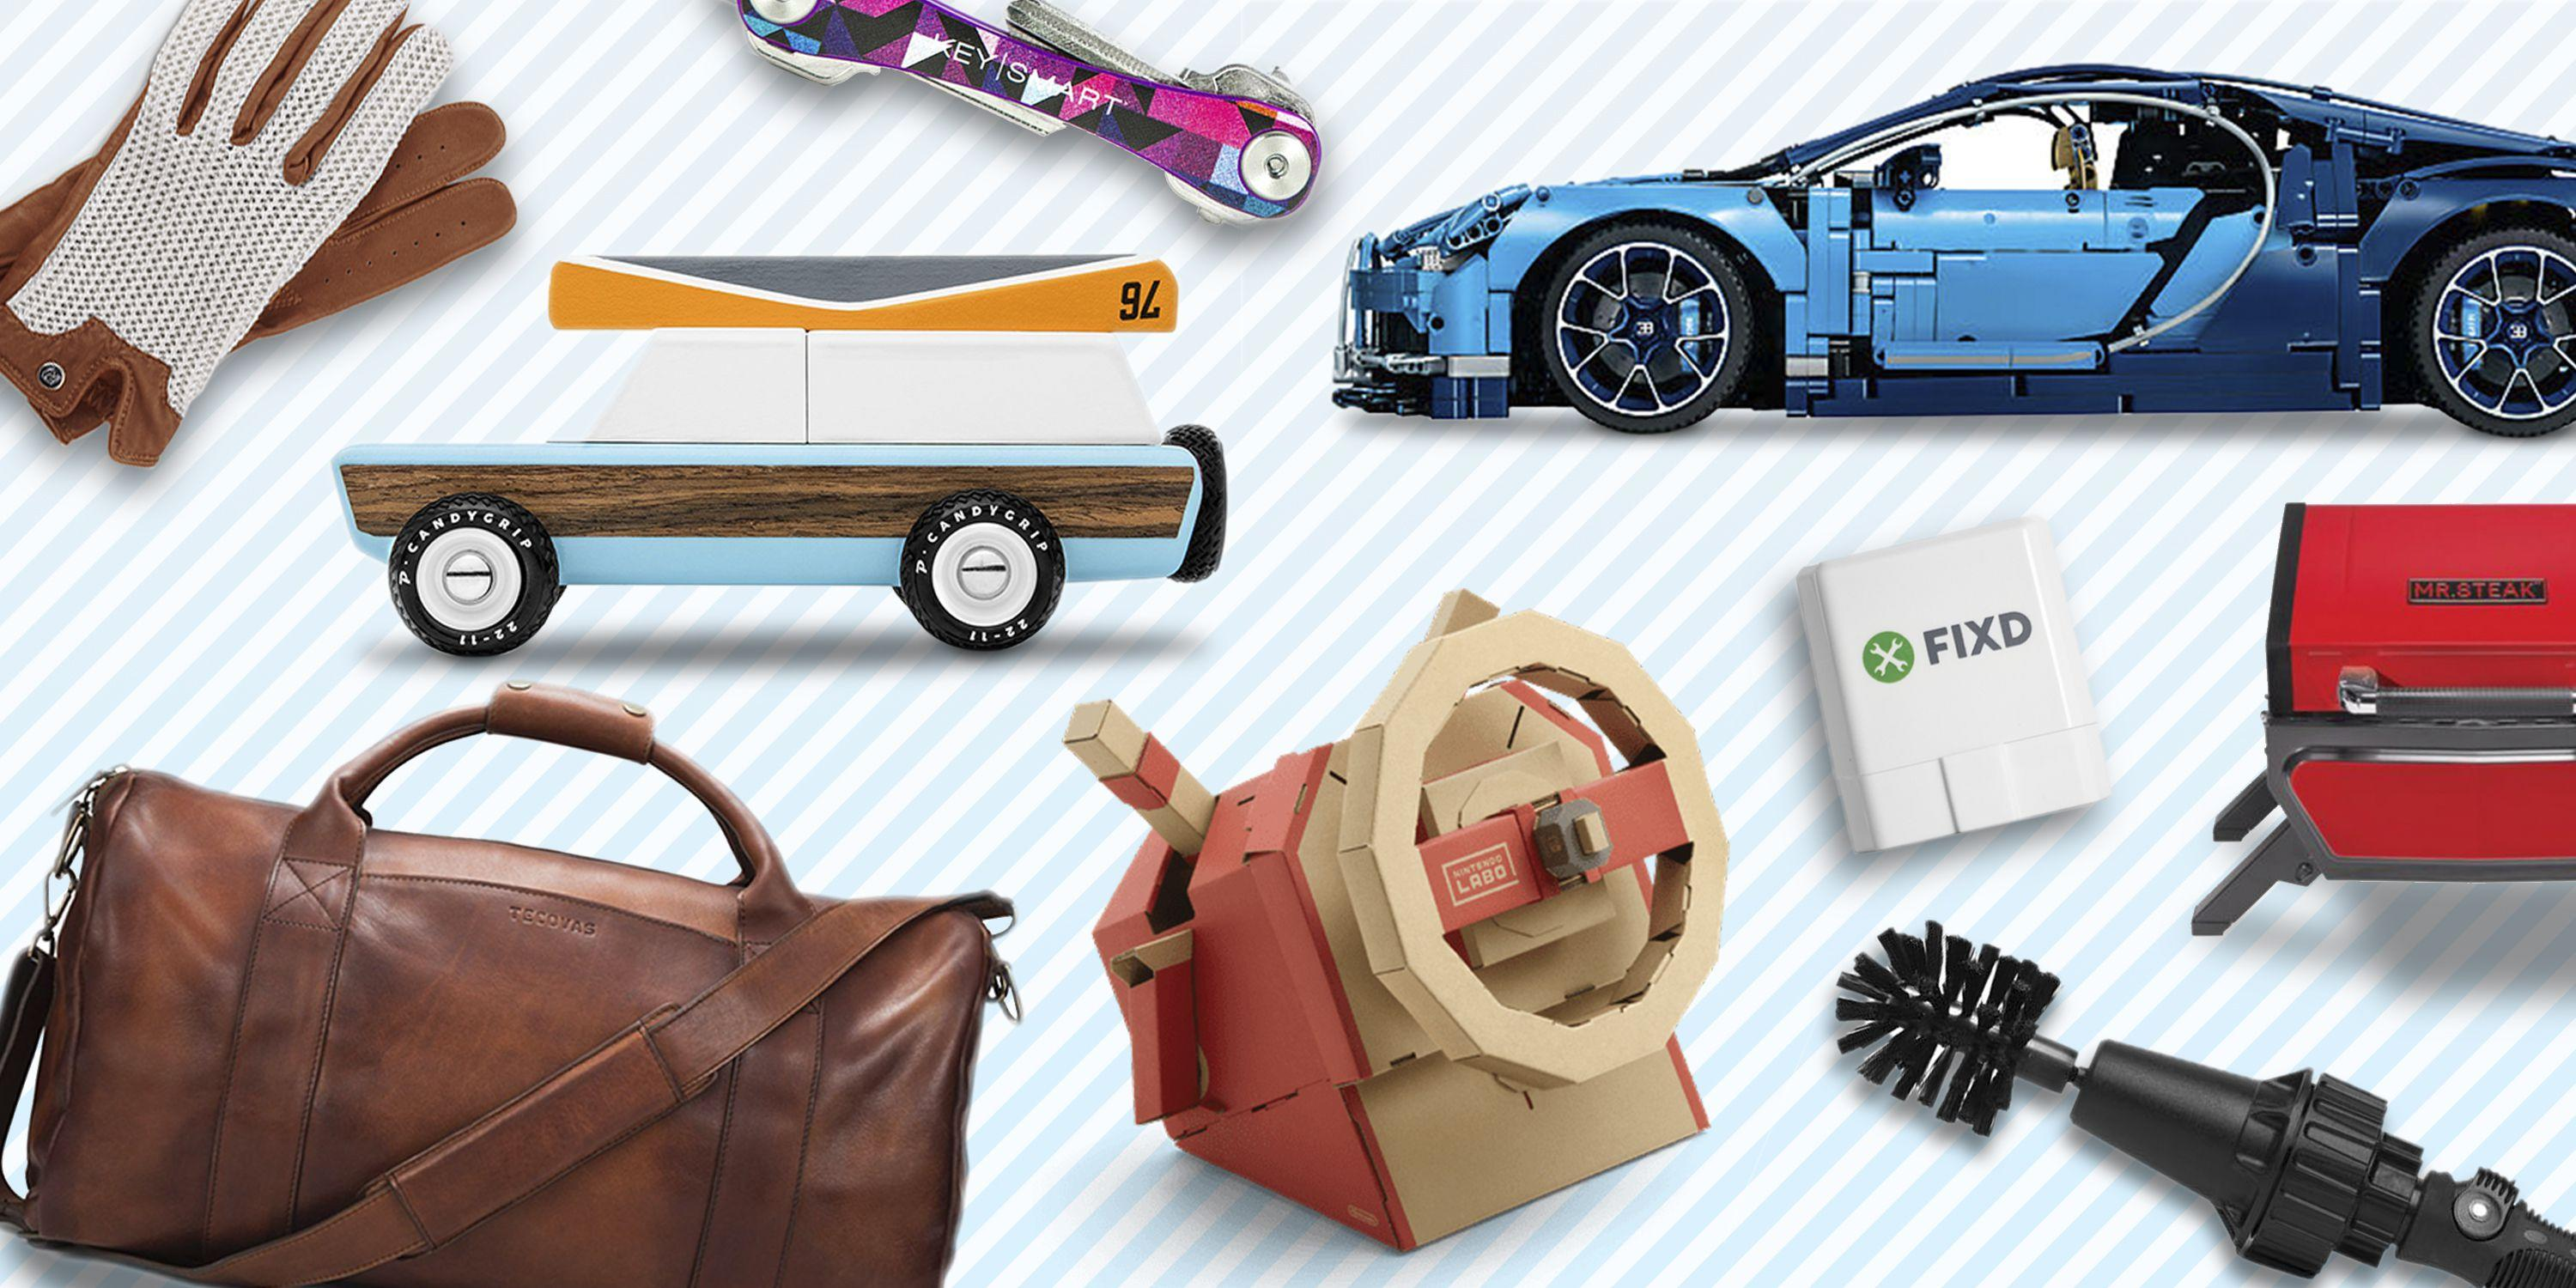 <p>Whether you're shopping for a little something for yourself or looking for a good gift to pick up your autos-obsessed sweetie for Valentine's Day, we've assembled 35 of the coolest gifts to help you get the job done. If your thing is vintage cars, we've got gifts for that. If video games are more like it, yep, we got that, too. There are items here for auto enthusiasts of all kinds, so dig in, click Shop Now, and enjoy a few of our favorite products.<br><br> <em>Additional reporting by Rich Ceppos, Darren Fitzgerald, Daniel Golson, Max Mortimer, Eric Stafford, and Alex Stoklosa.</em></p>